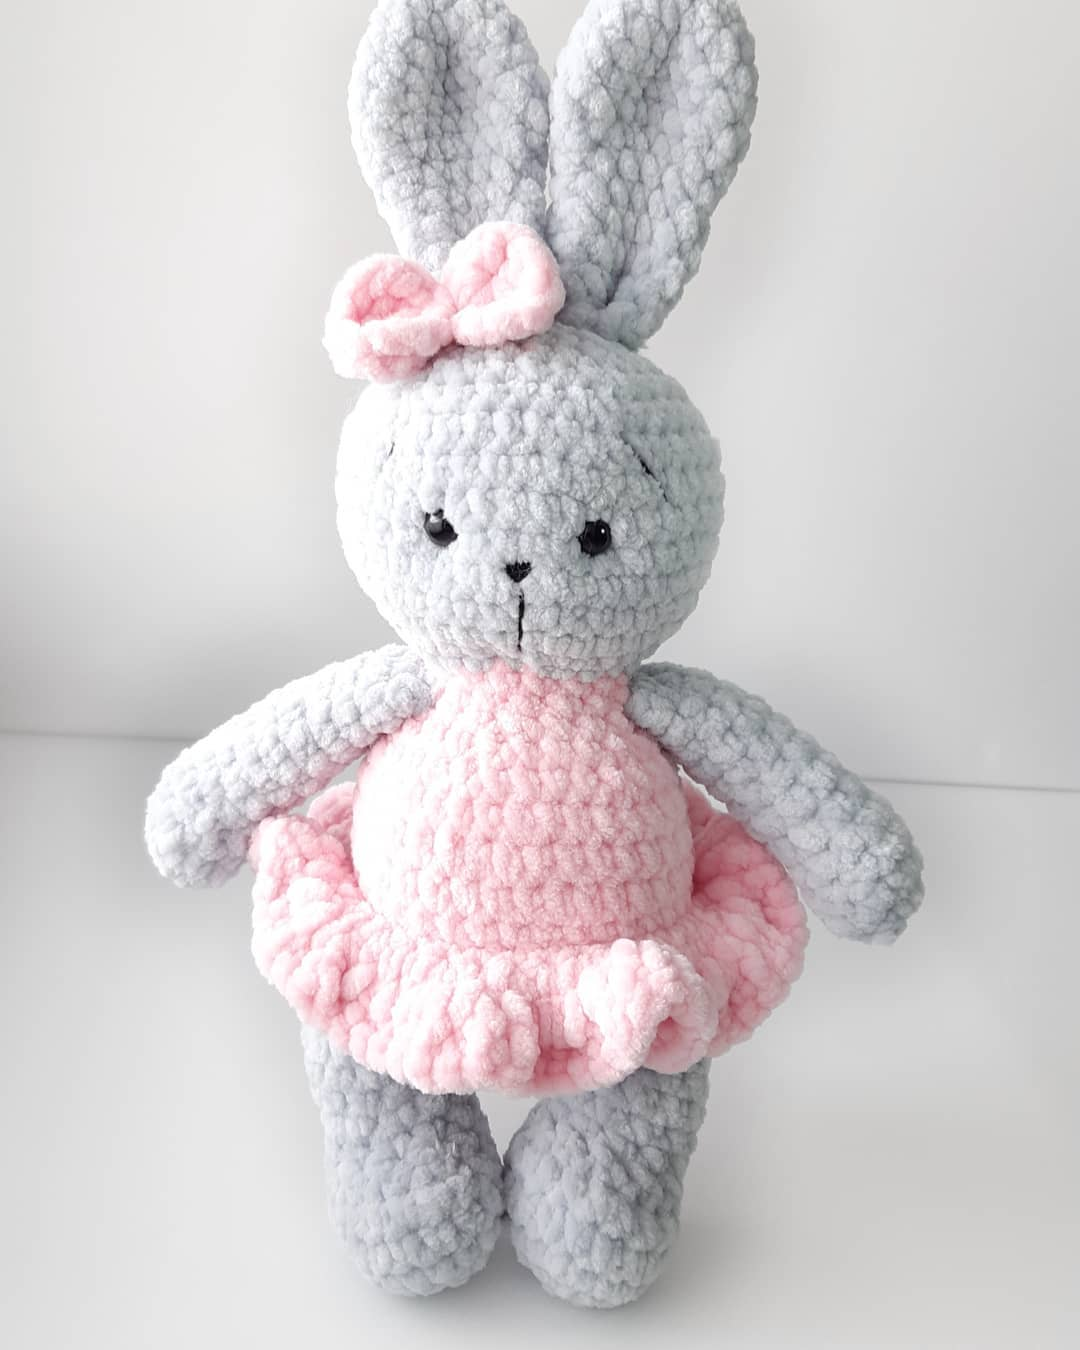 amigurumi-where-to-start-first-which-toy-to-start-the-most-easy-30-free-idea-2019